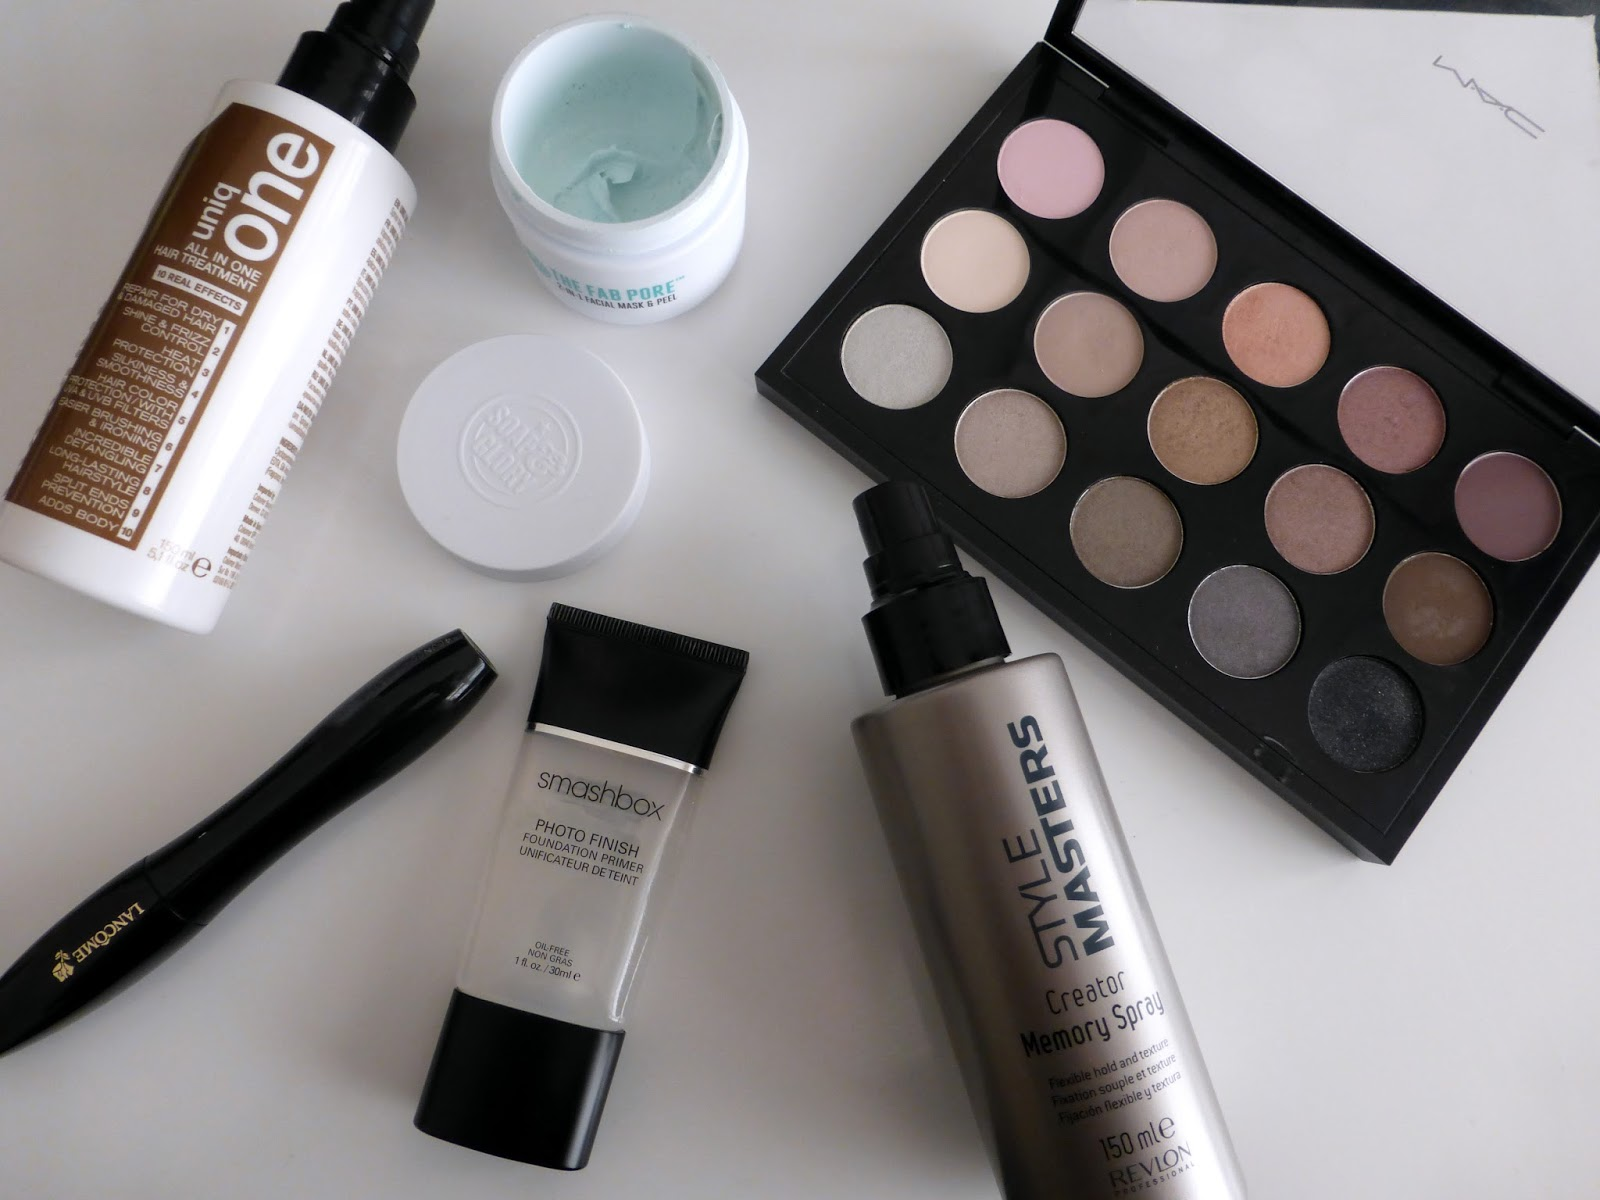 mac cool neutral palette, uniqone, revlon professional, soap and glory 2 in 1 face mask, lancome hypnoses drama, smashbox